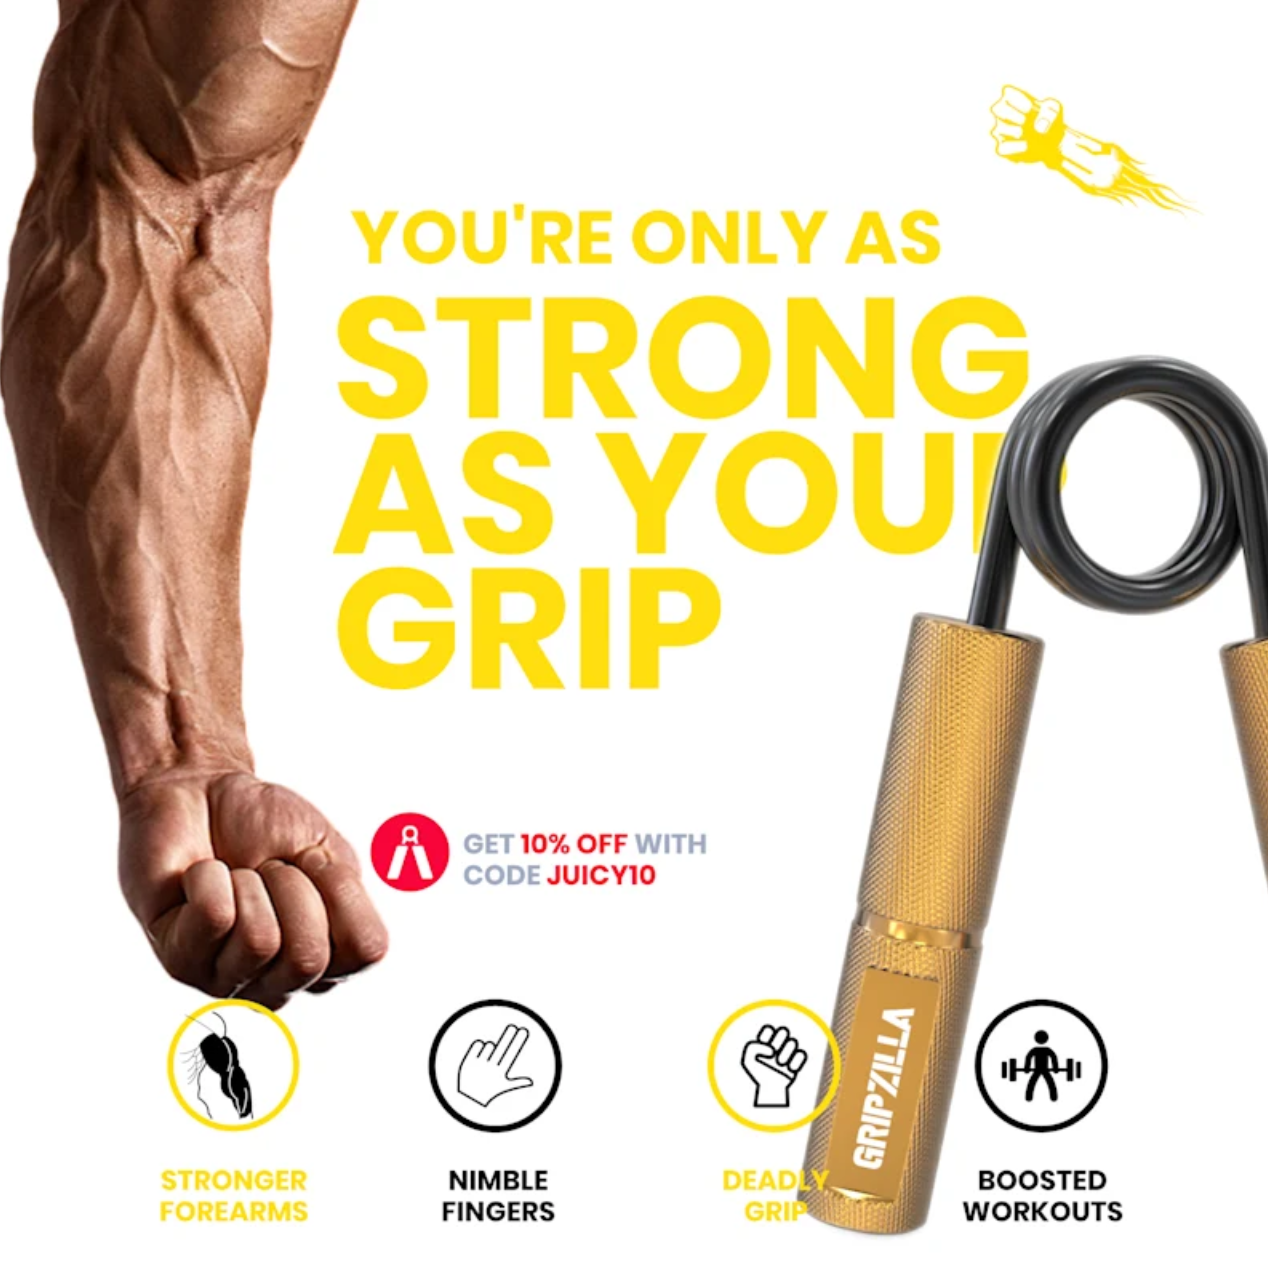 GRIPZILLA - Meet The Ultimate Grip Training Kit For Wellness And Fitness Enthusiasts